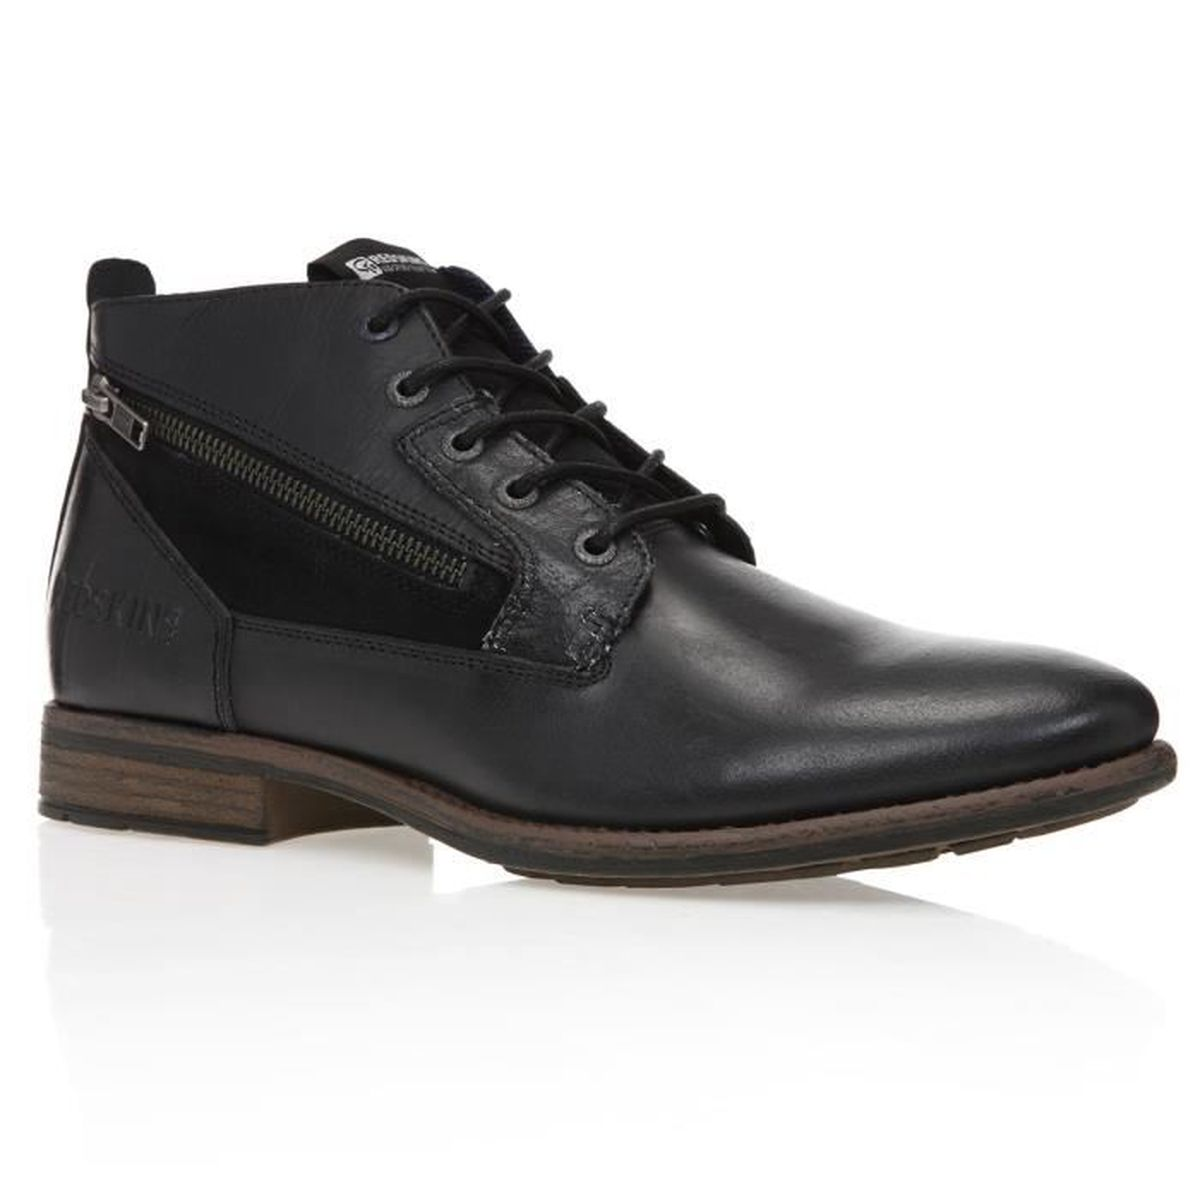 chaussures boots homme solde. Black Bedroom Furniture Sets. Home Design Ideas